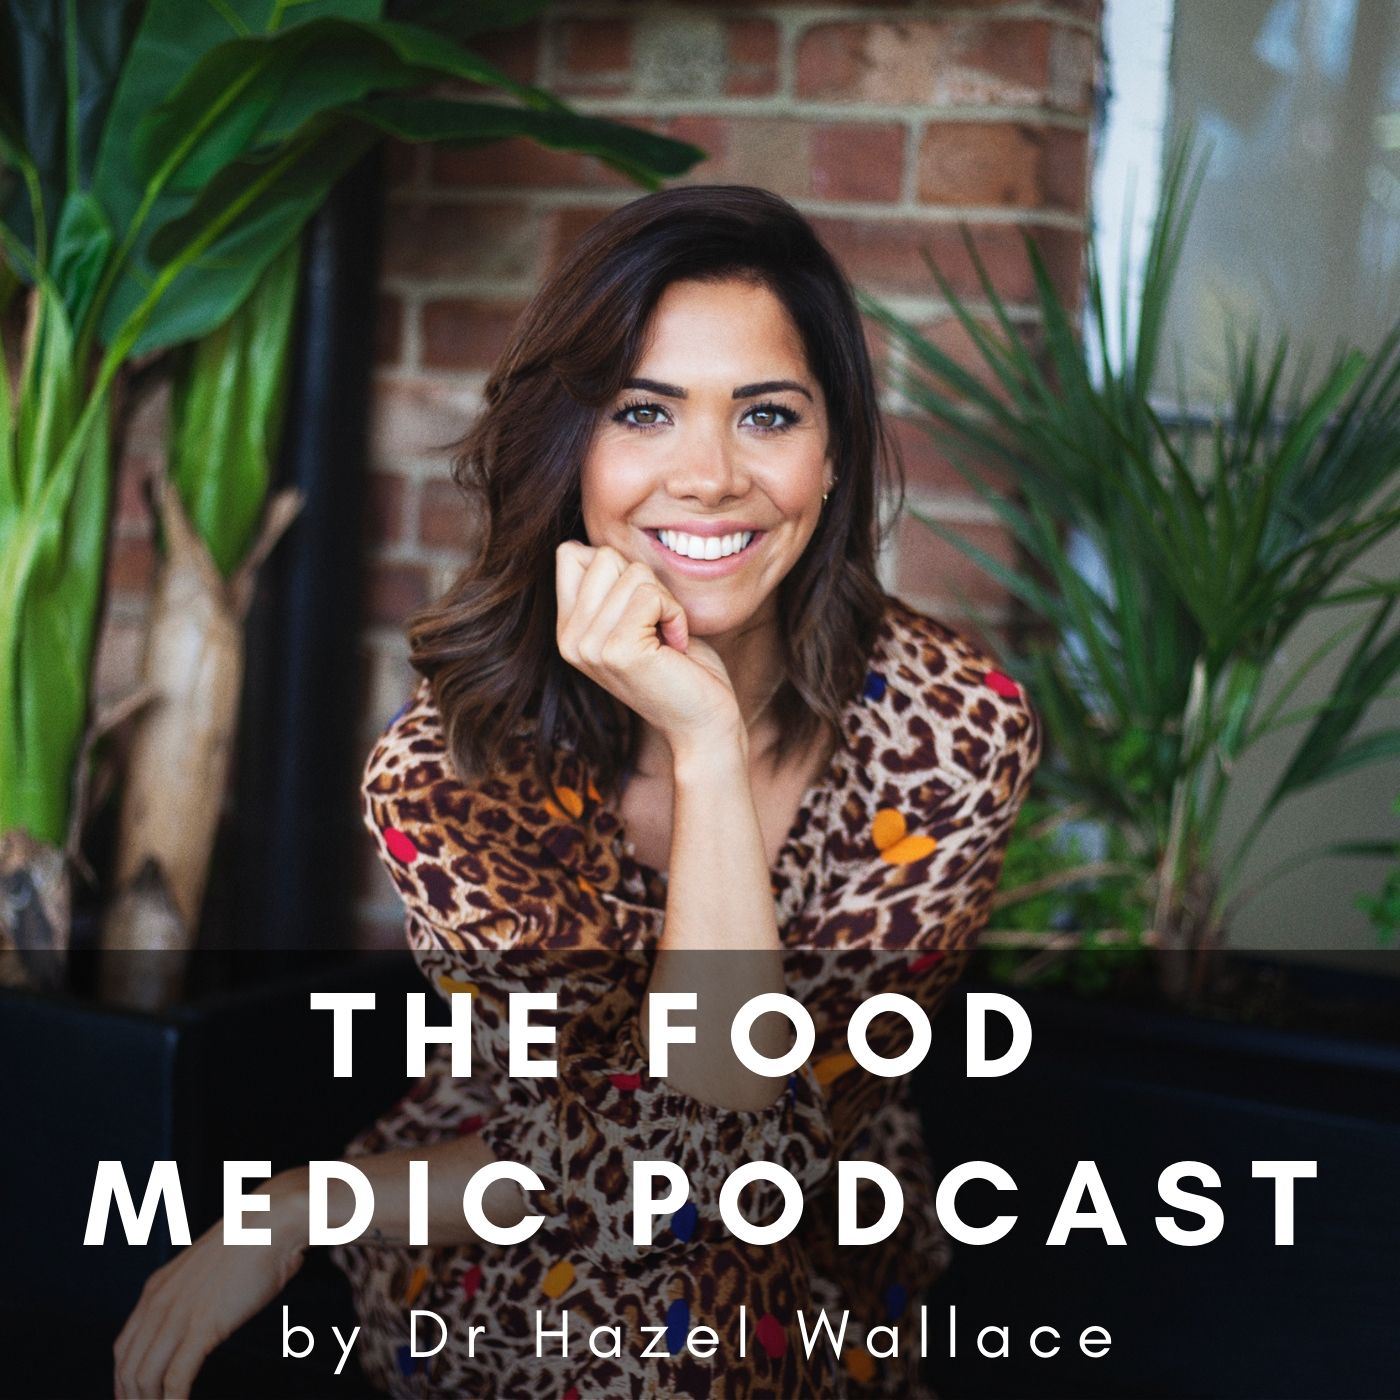 S2 E1 - Live Podcast: Cancer and Diet